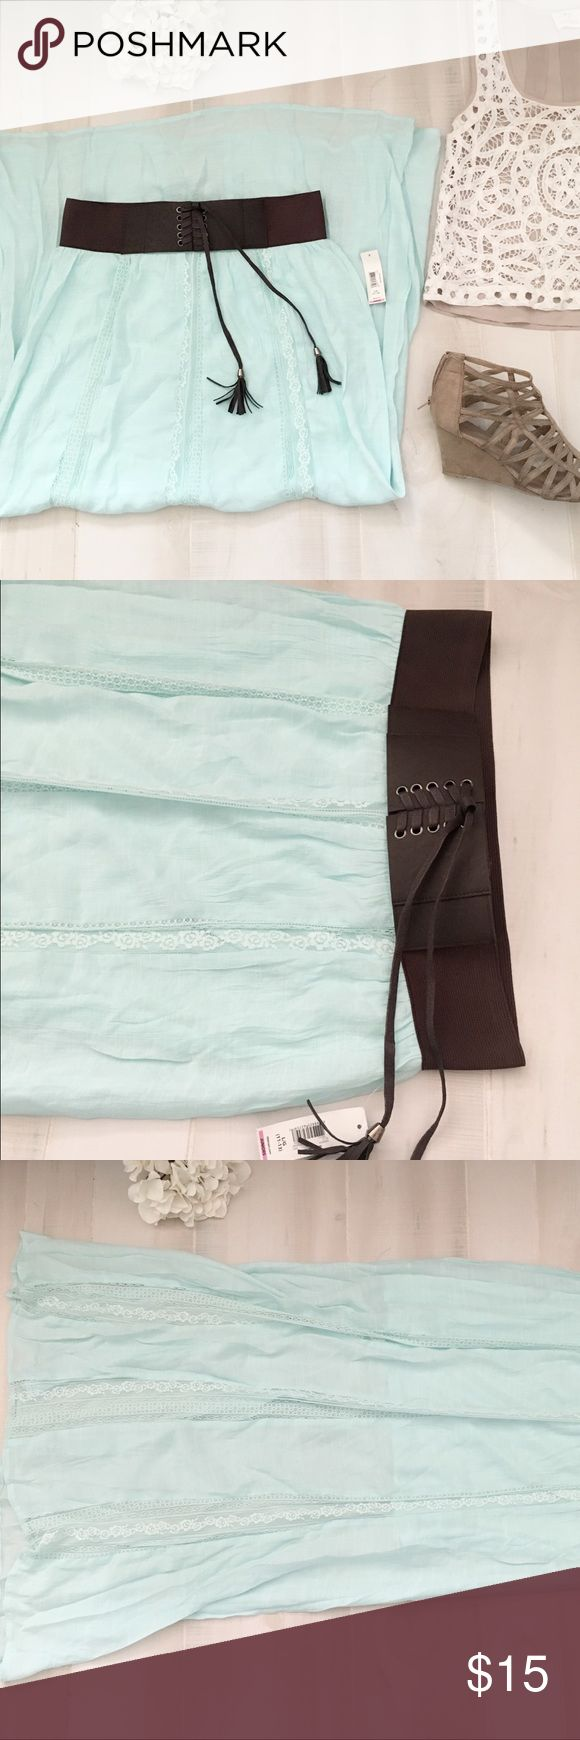 "Boho maxi mint maxi skirt Cute boho maxi skirt. Mint colored with elastic thick faux waist belt with tassels. Textured fabric with alternating floral lace stripes. Has shorter lining. Size L, juniors. Waist 15.5, waist to hem 40"". Skirts Maxi"